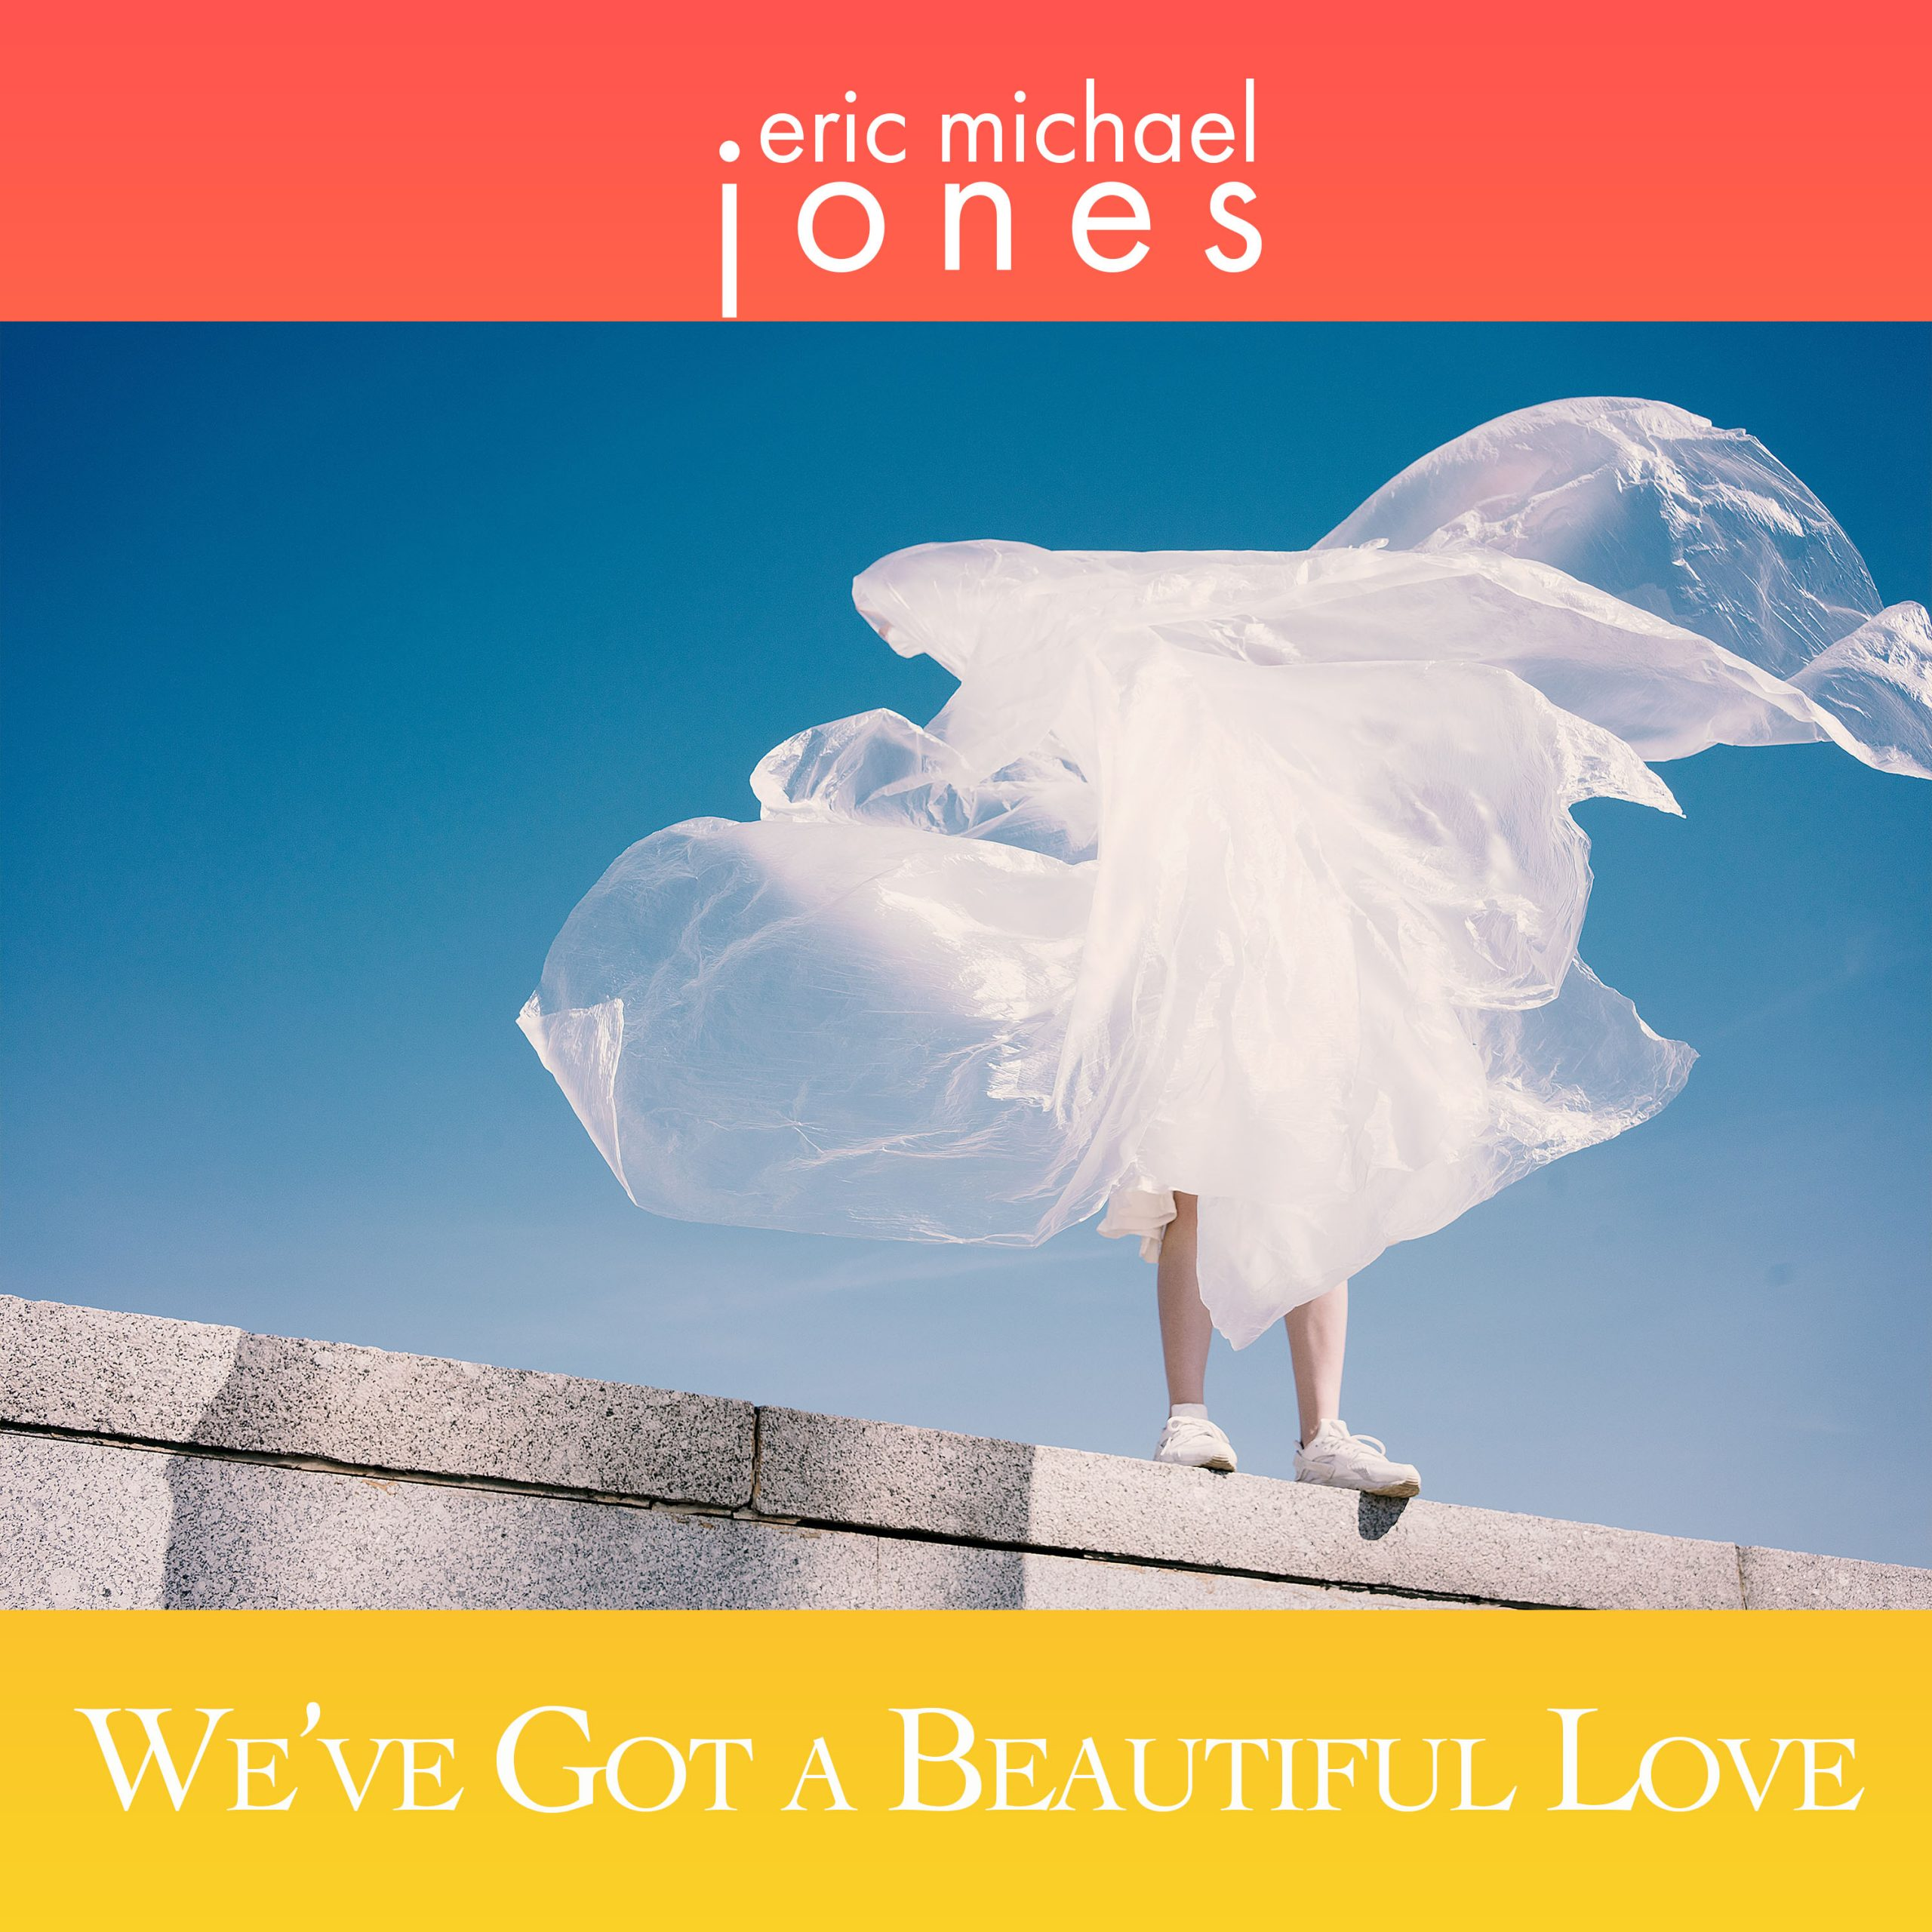 Cover art for We've Got A Beautiful Love, showing a figure standing on a wall and obscured by flowing plastic wrap